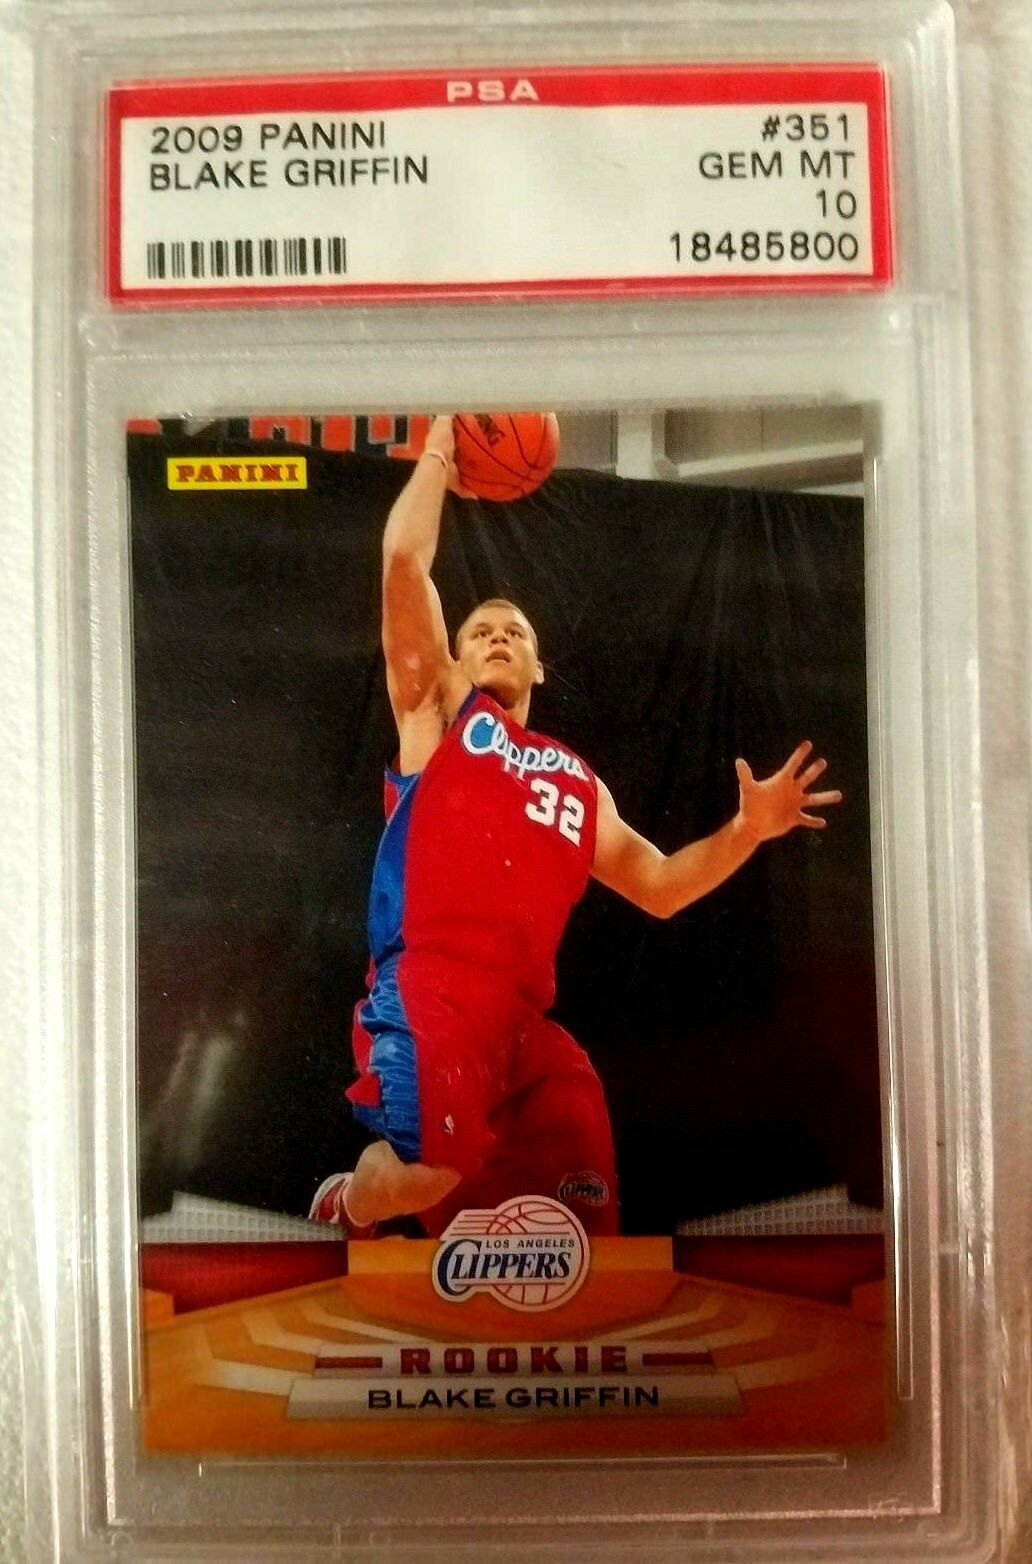 Blake Griffin RC 2007 Topps McDonald's All-American RC GEM BGS 9.5-Cippers F RC image 2